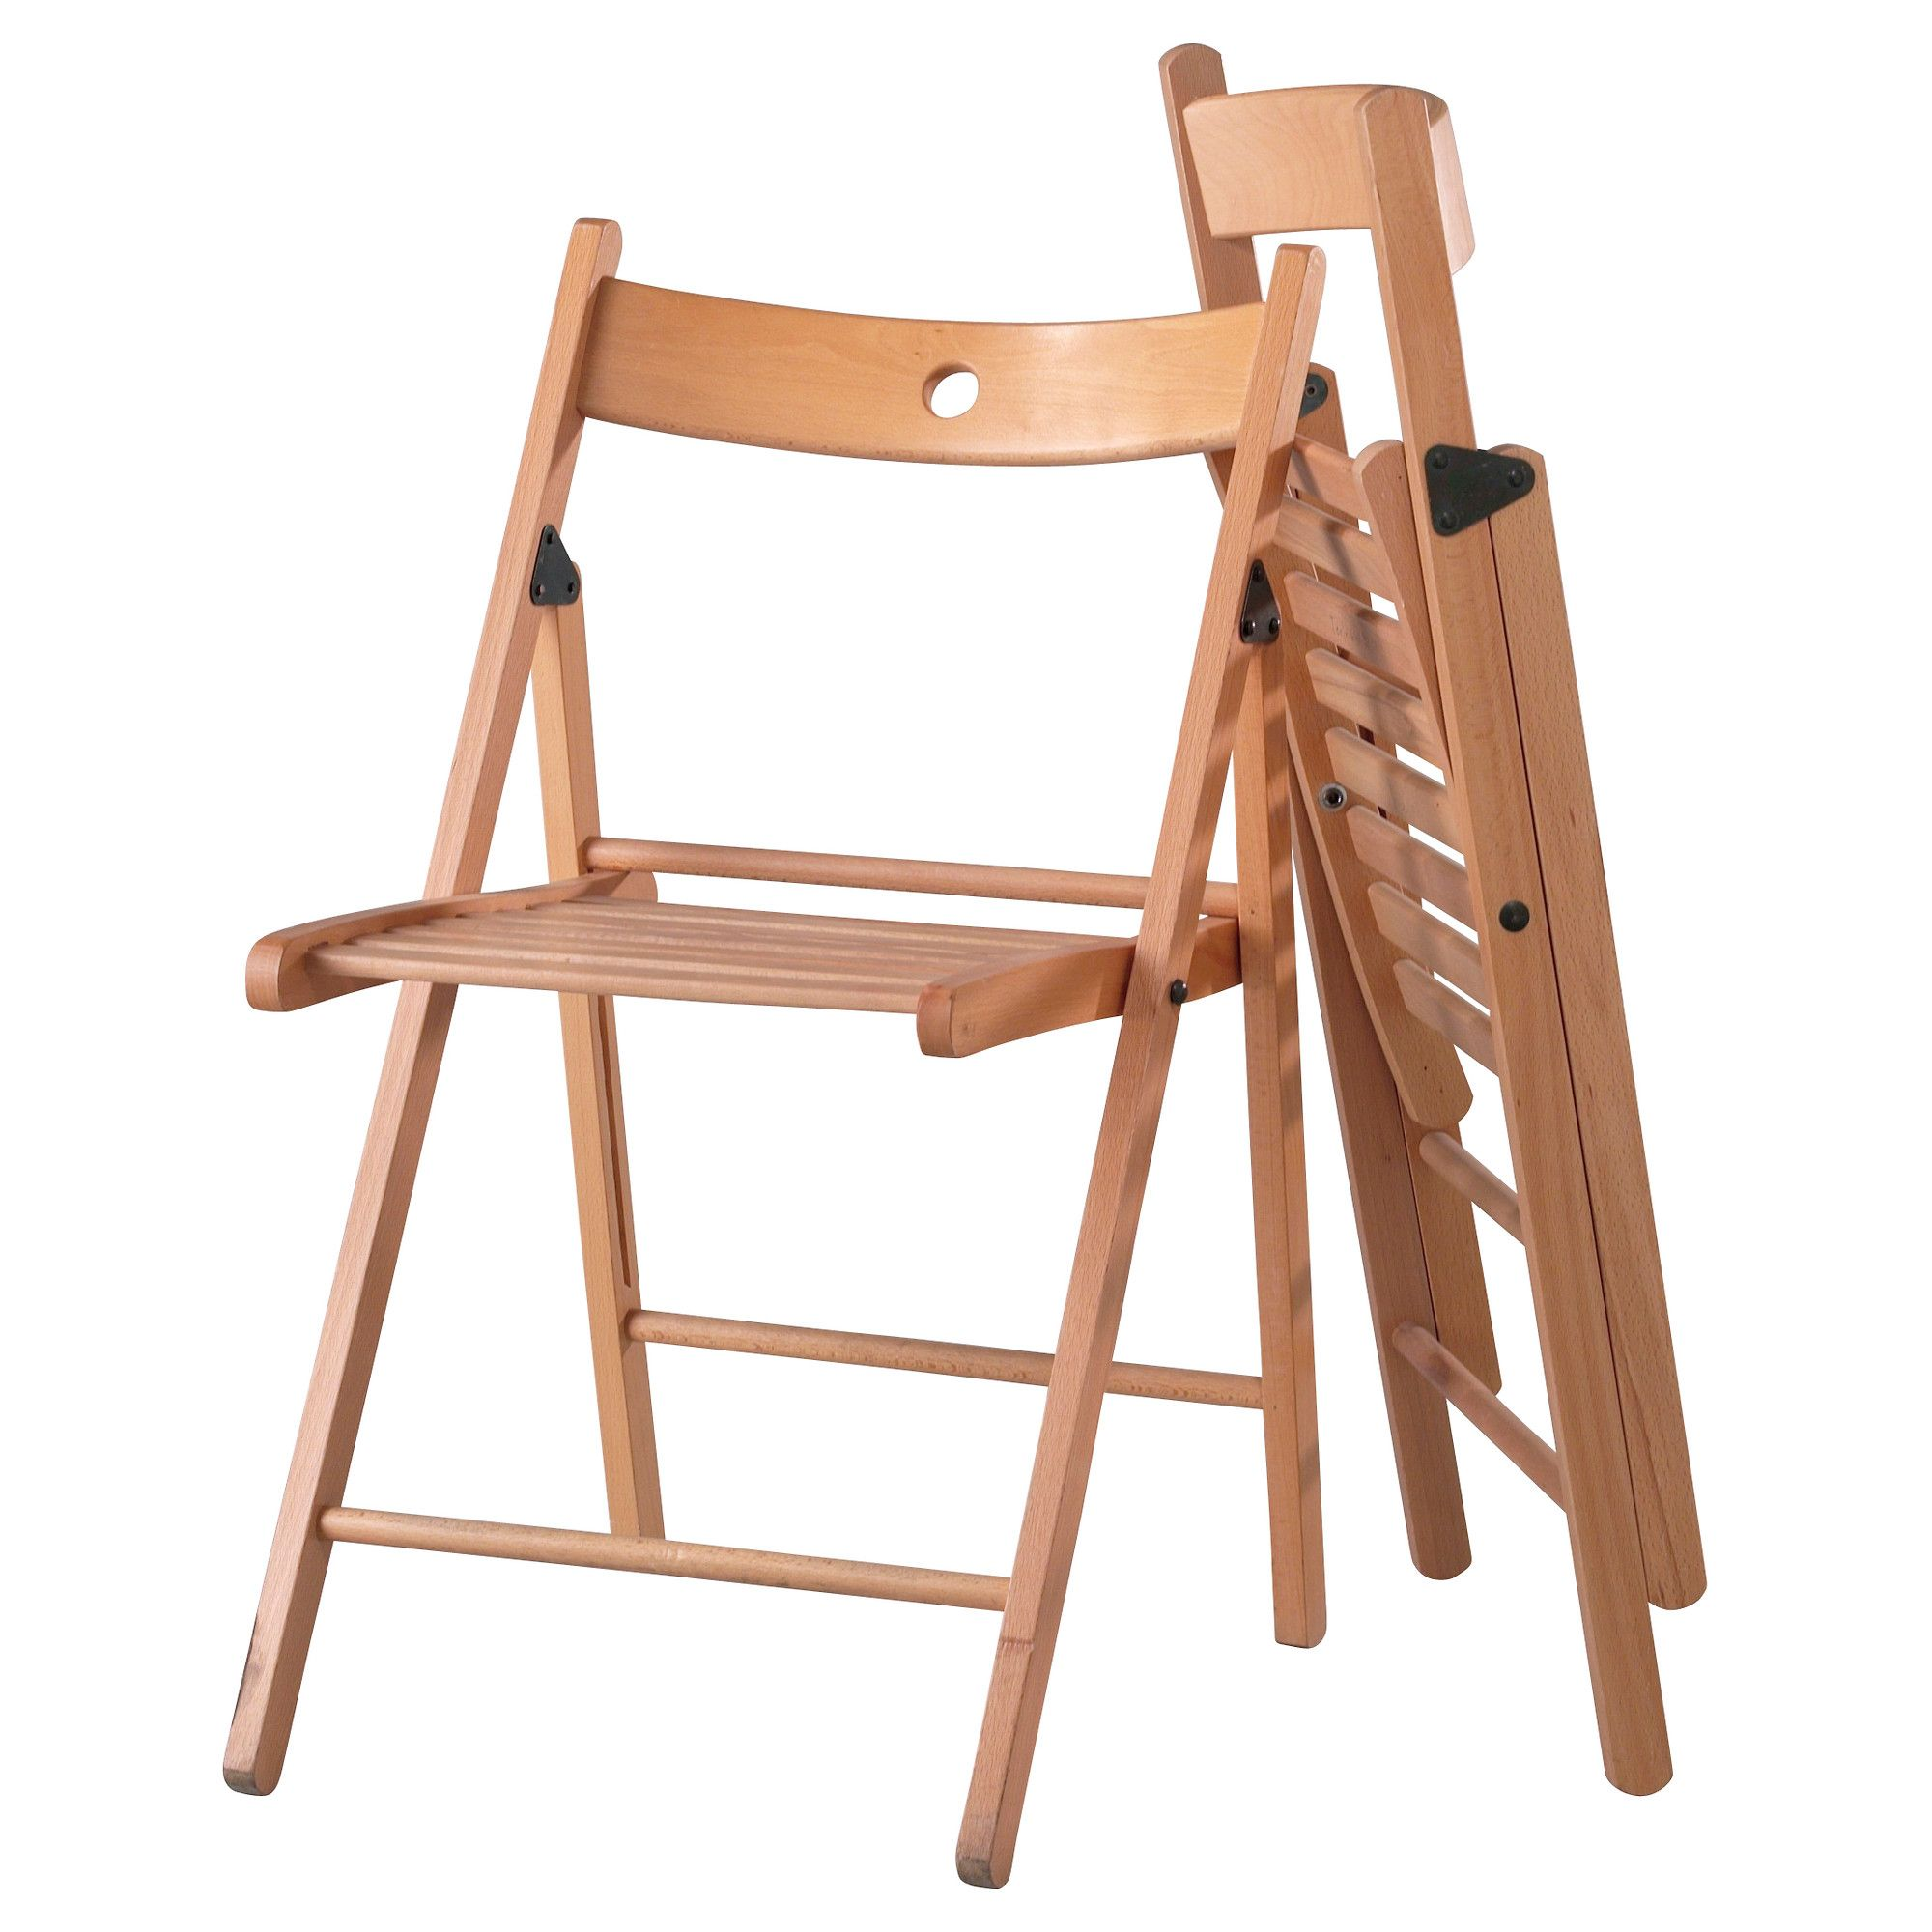 Wooden Folding Chairs Ikea wooden folding chairs ikea with 1755x1500 px for wooden chair Terje Folding Chair Ikea  sc 1 st  Pinterest & Wooden Folding Chairs Ikea wooden folding chairs ikea with 1755x1500 ...